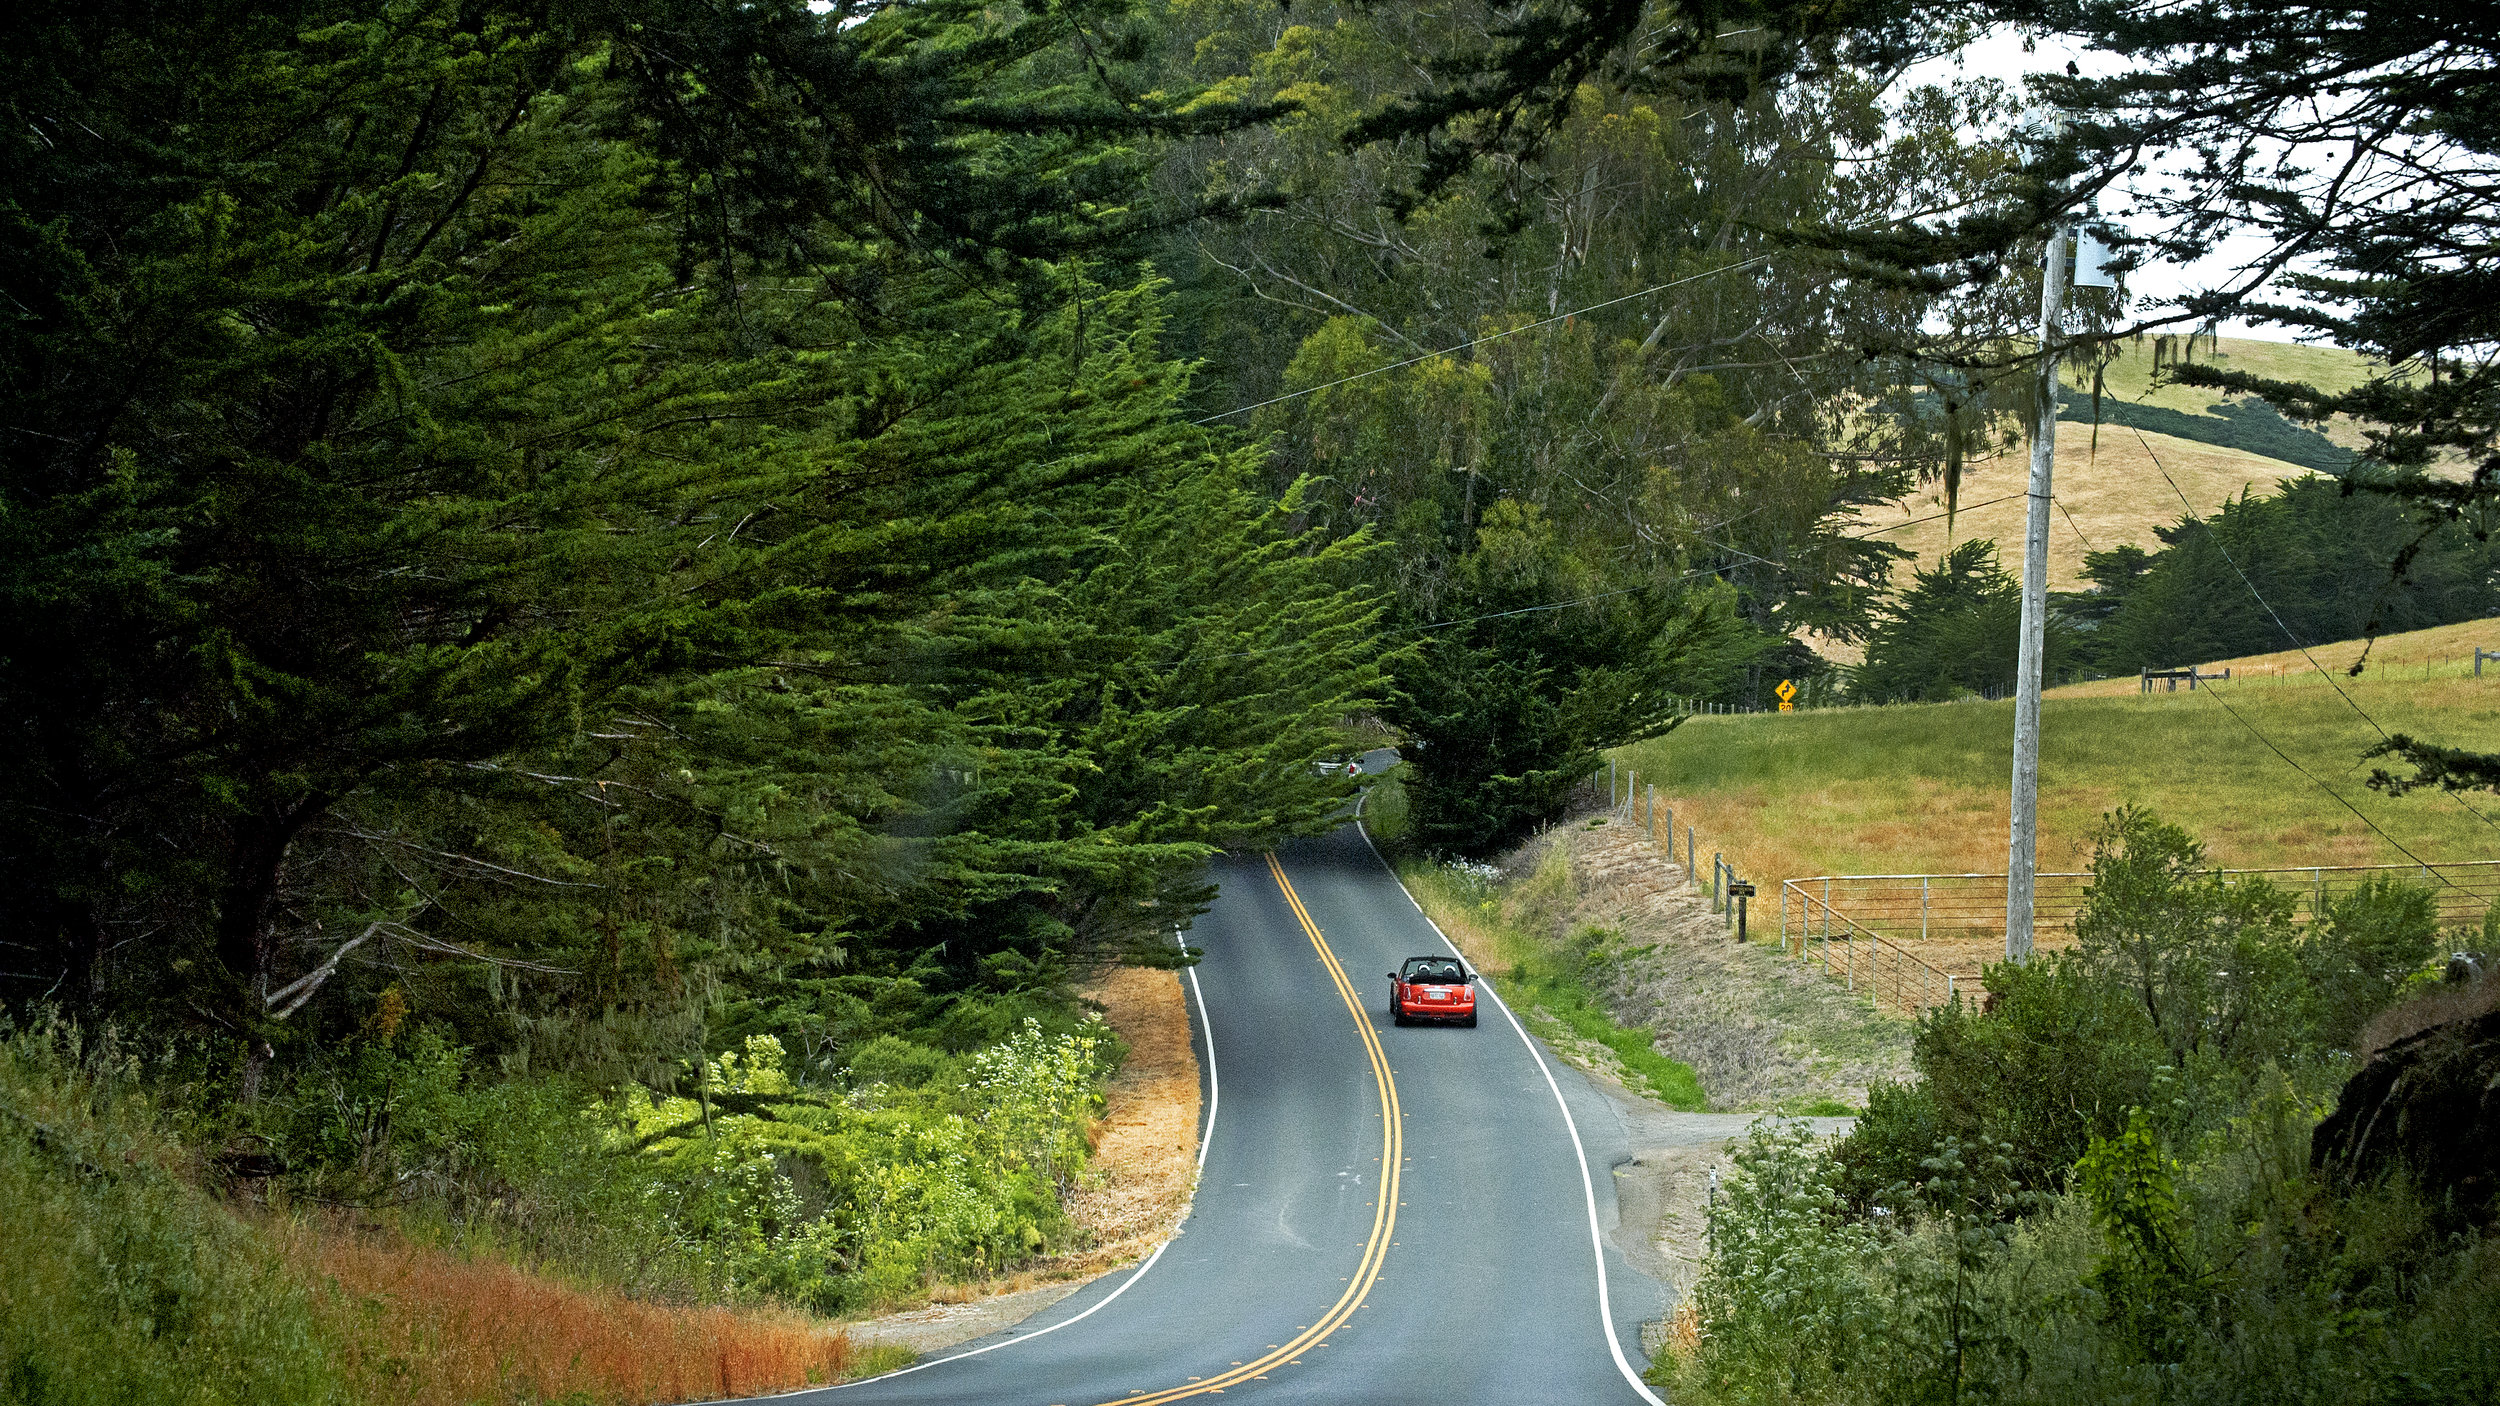 Scenic views along the Bodega Highway. Sebastopol is also linked to the Bohemian Highway, which leads up to the Russian River.